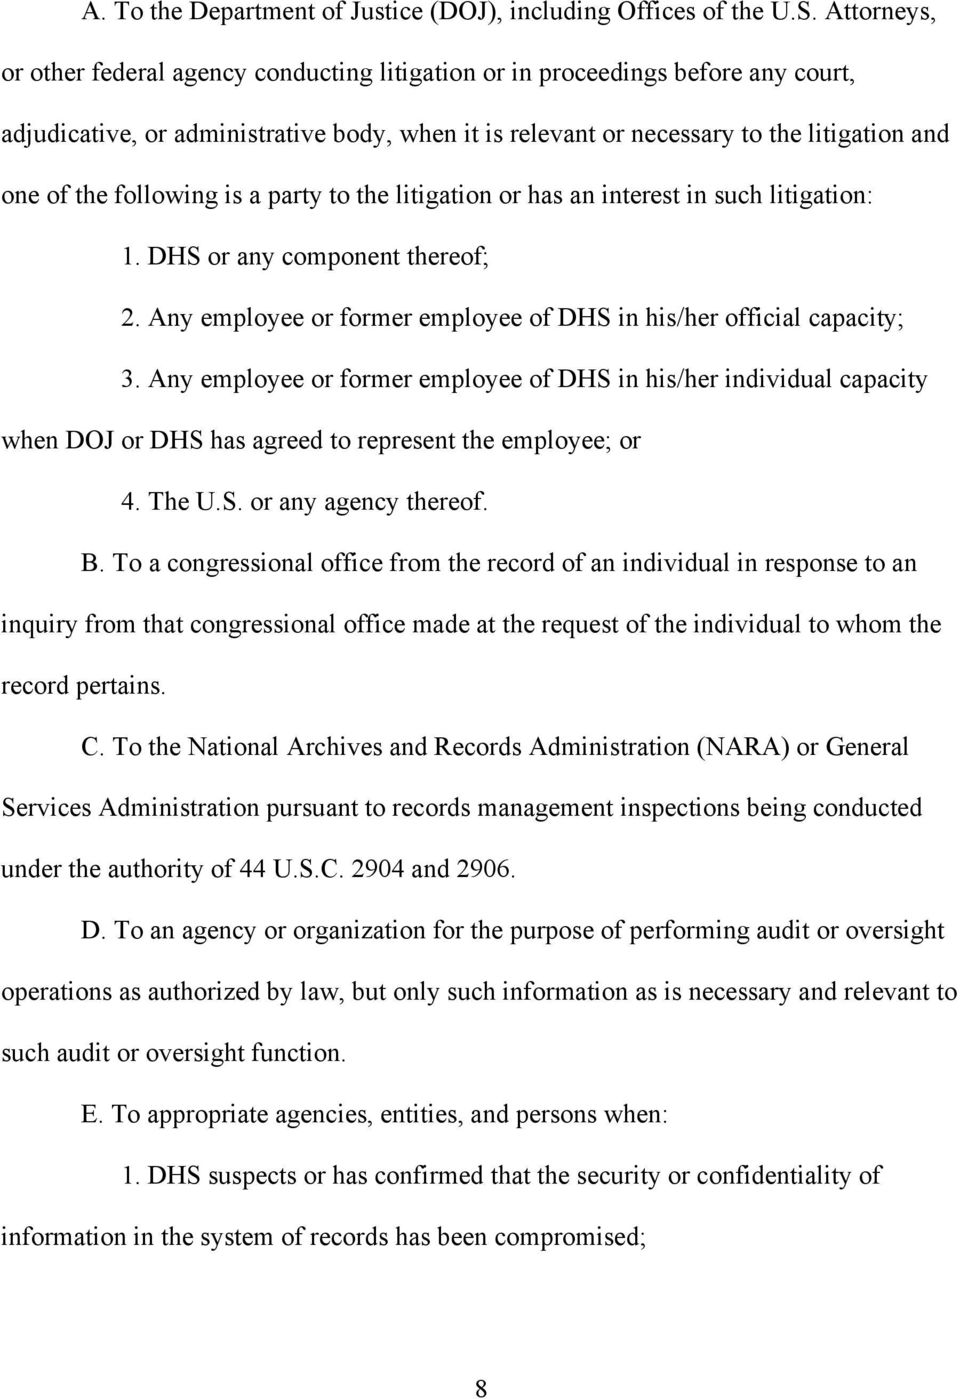 following is a party to the litigation or has an interest in such litigation: 1. DHS or any component thereof; 2. Any employee or former employee of DHS in his/her official capacity; 3.